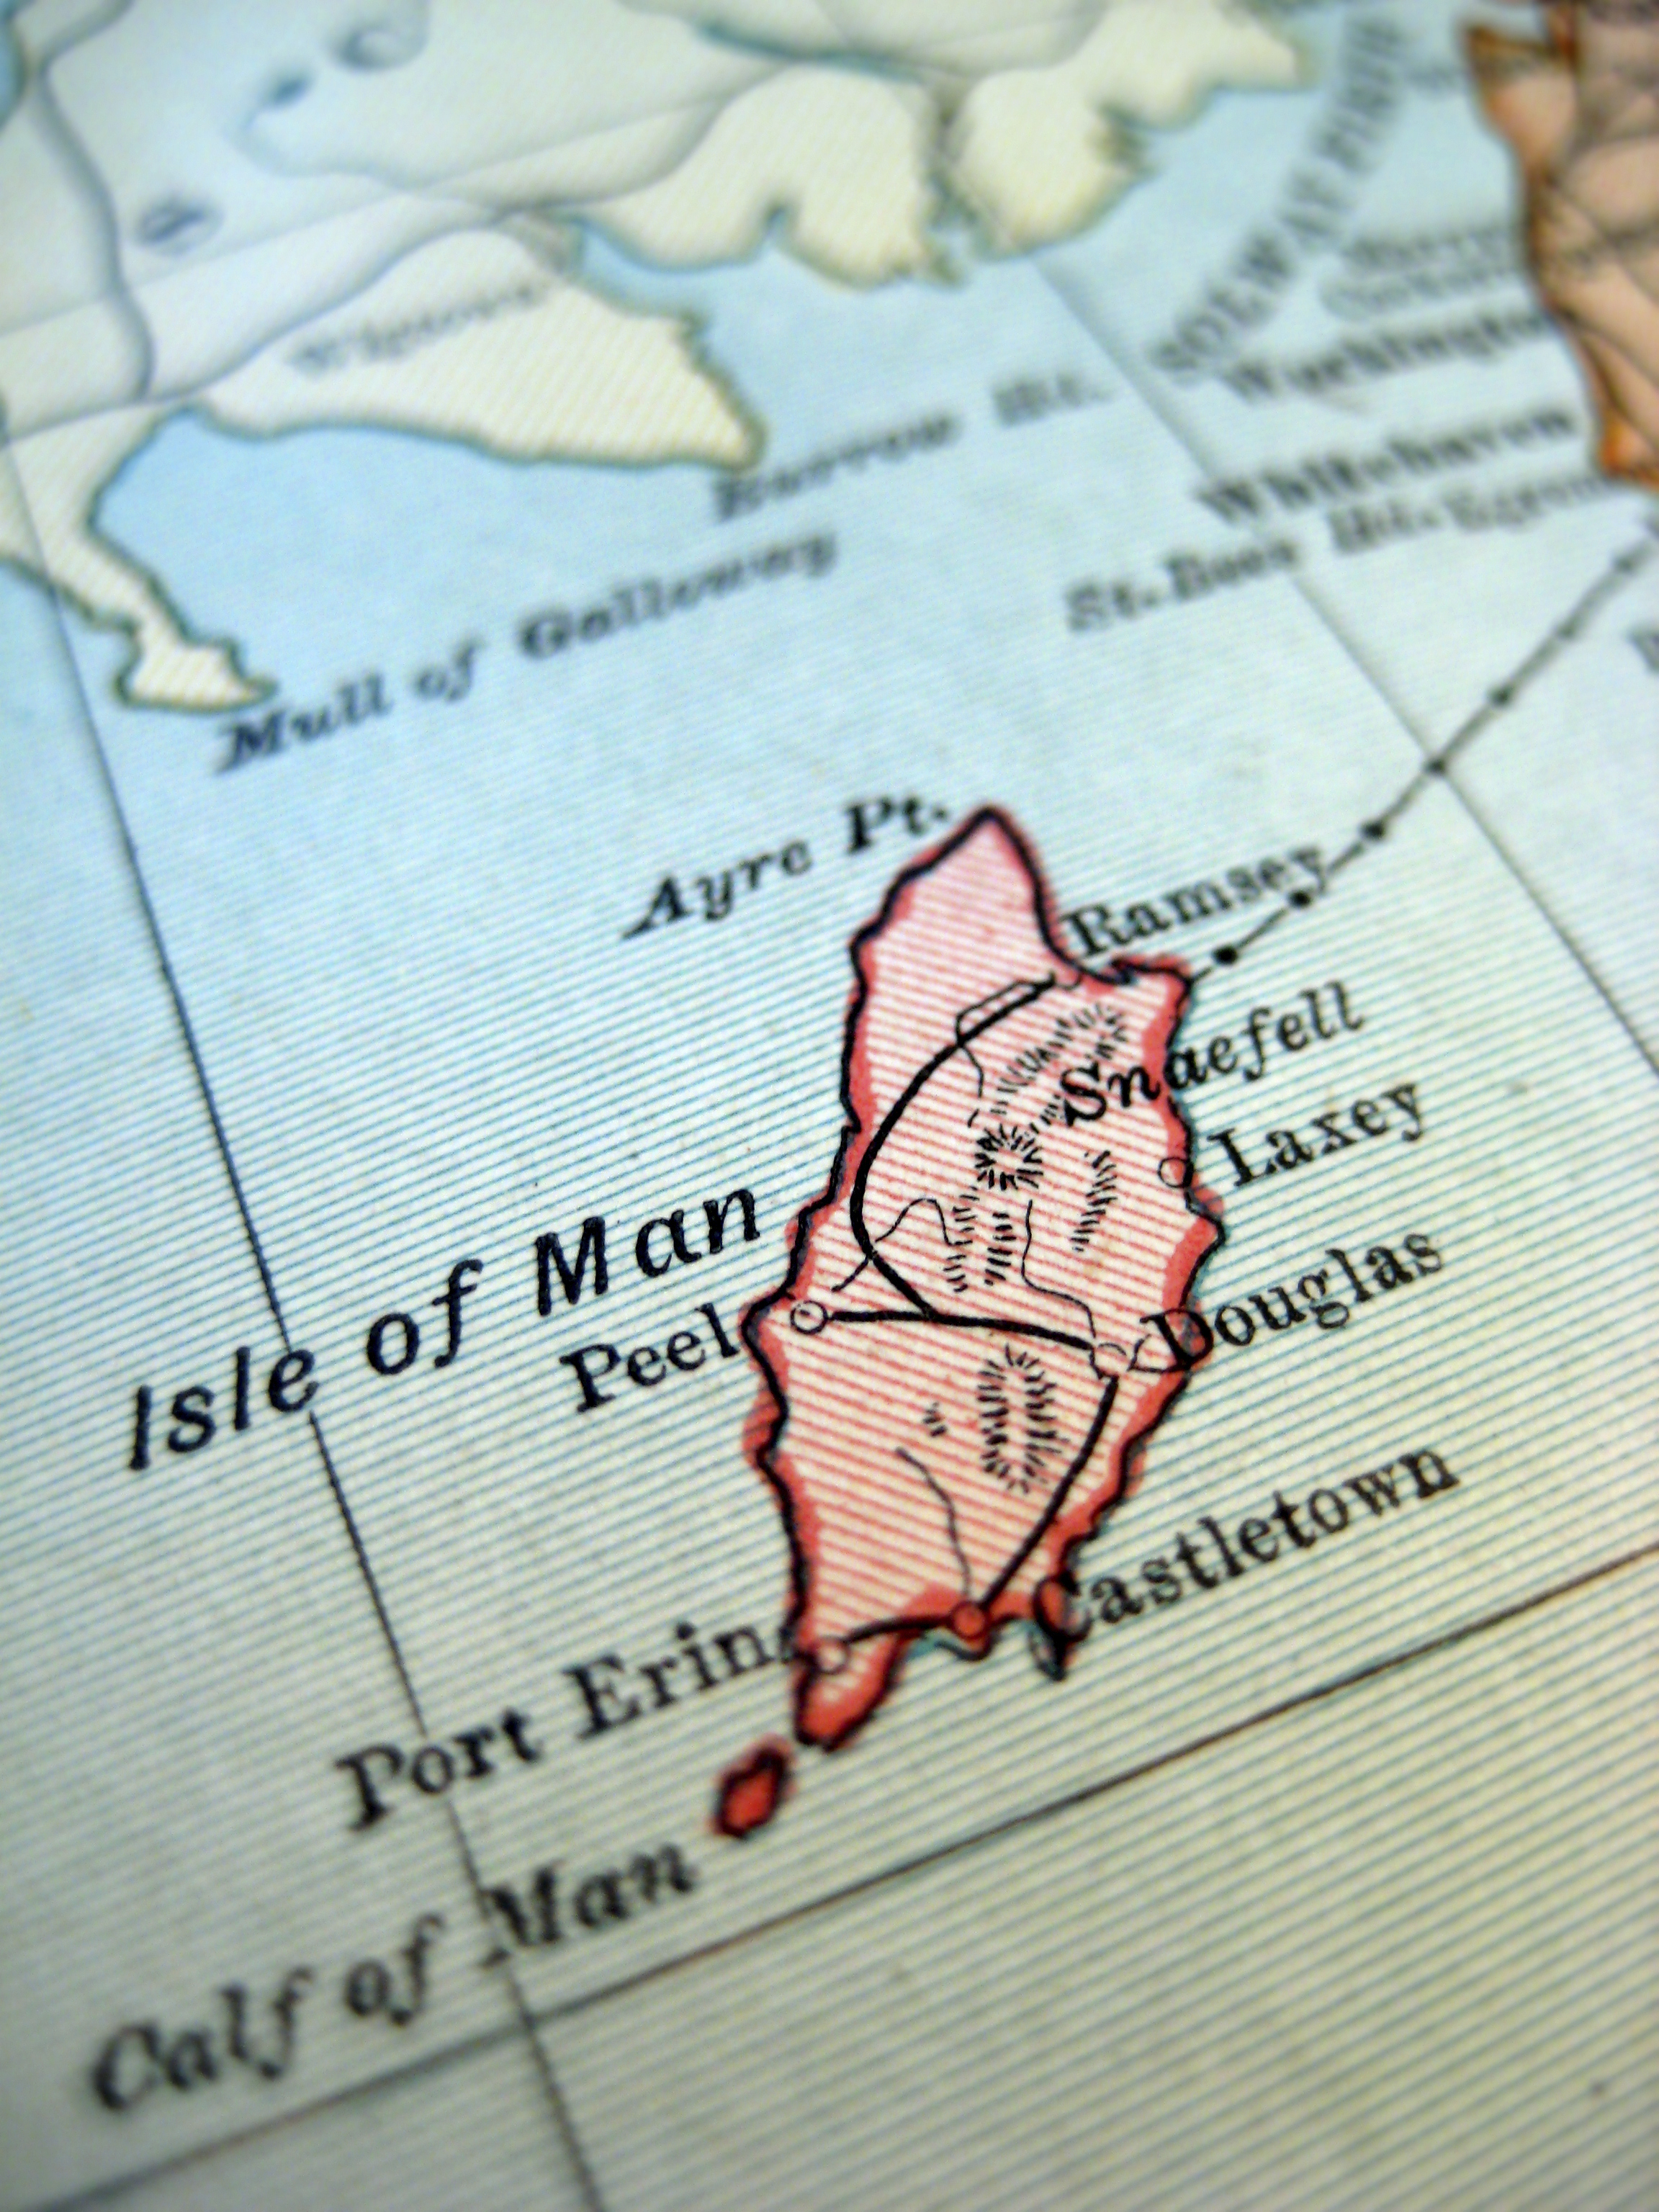 Humorous tales from our home on the isle of man